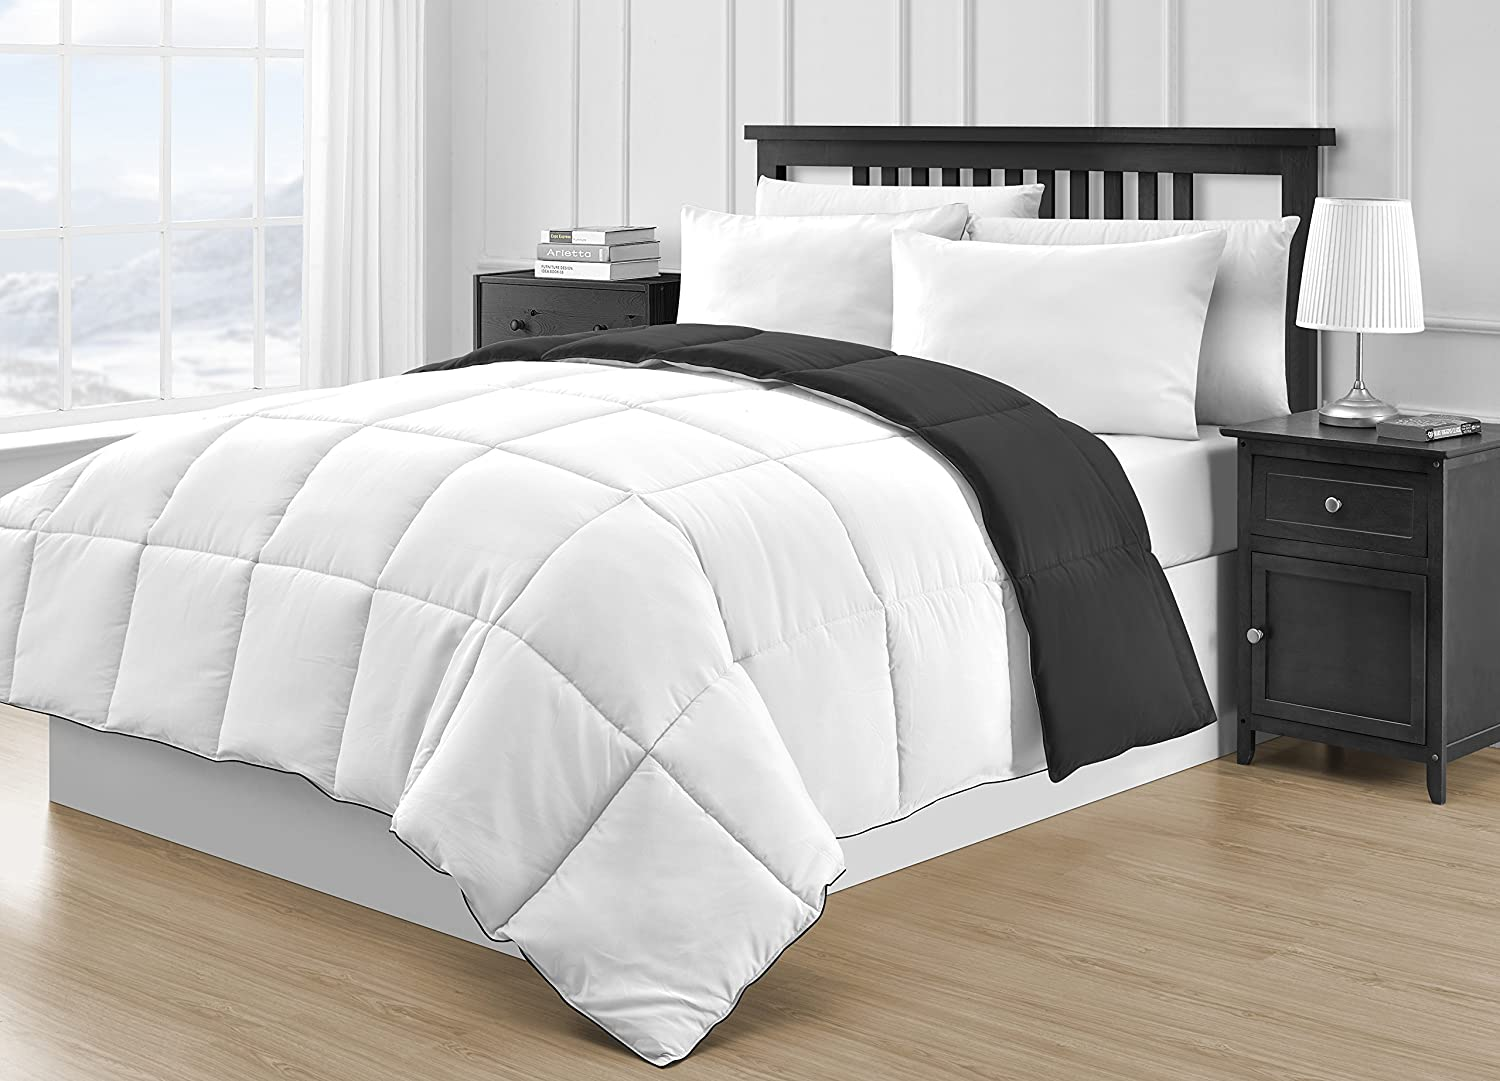 queen with awesome charming sets white comforter bedroom ideas extraordinary for design